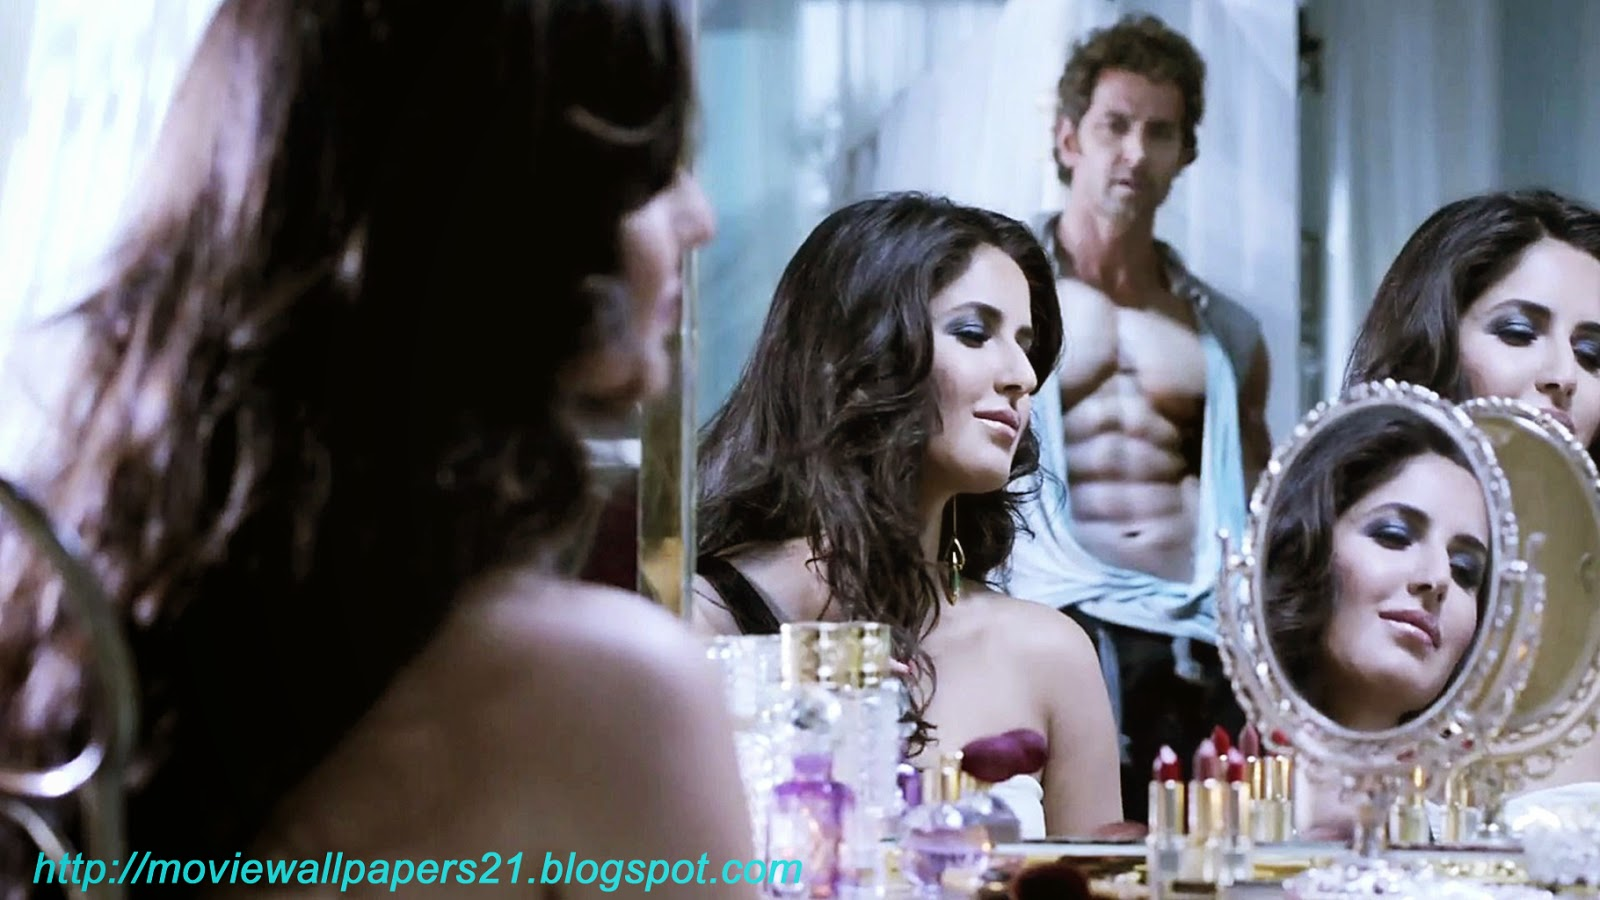 online movies wallpapers: katrina and hrithik bang bang 2014